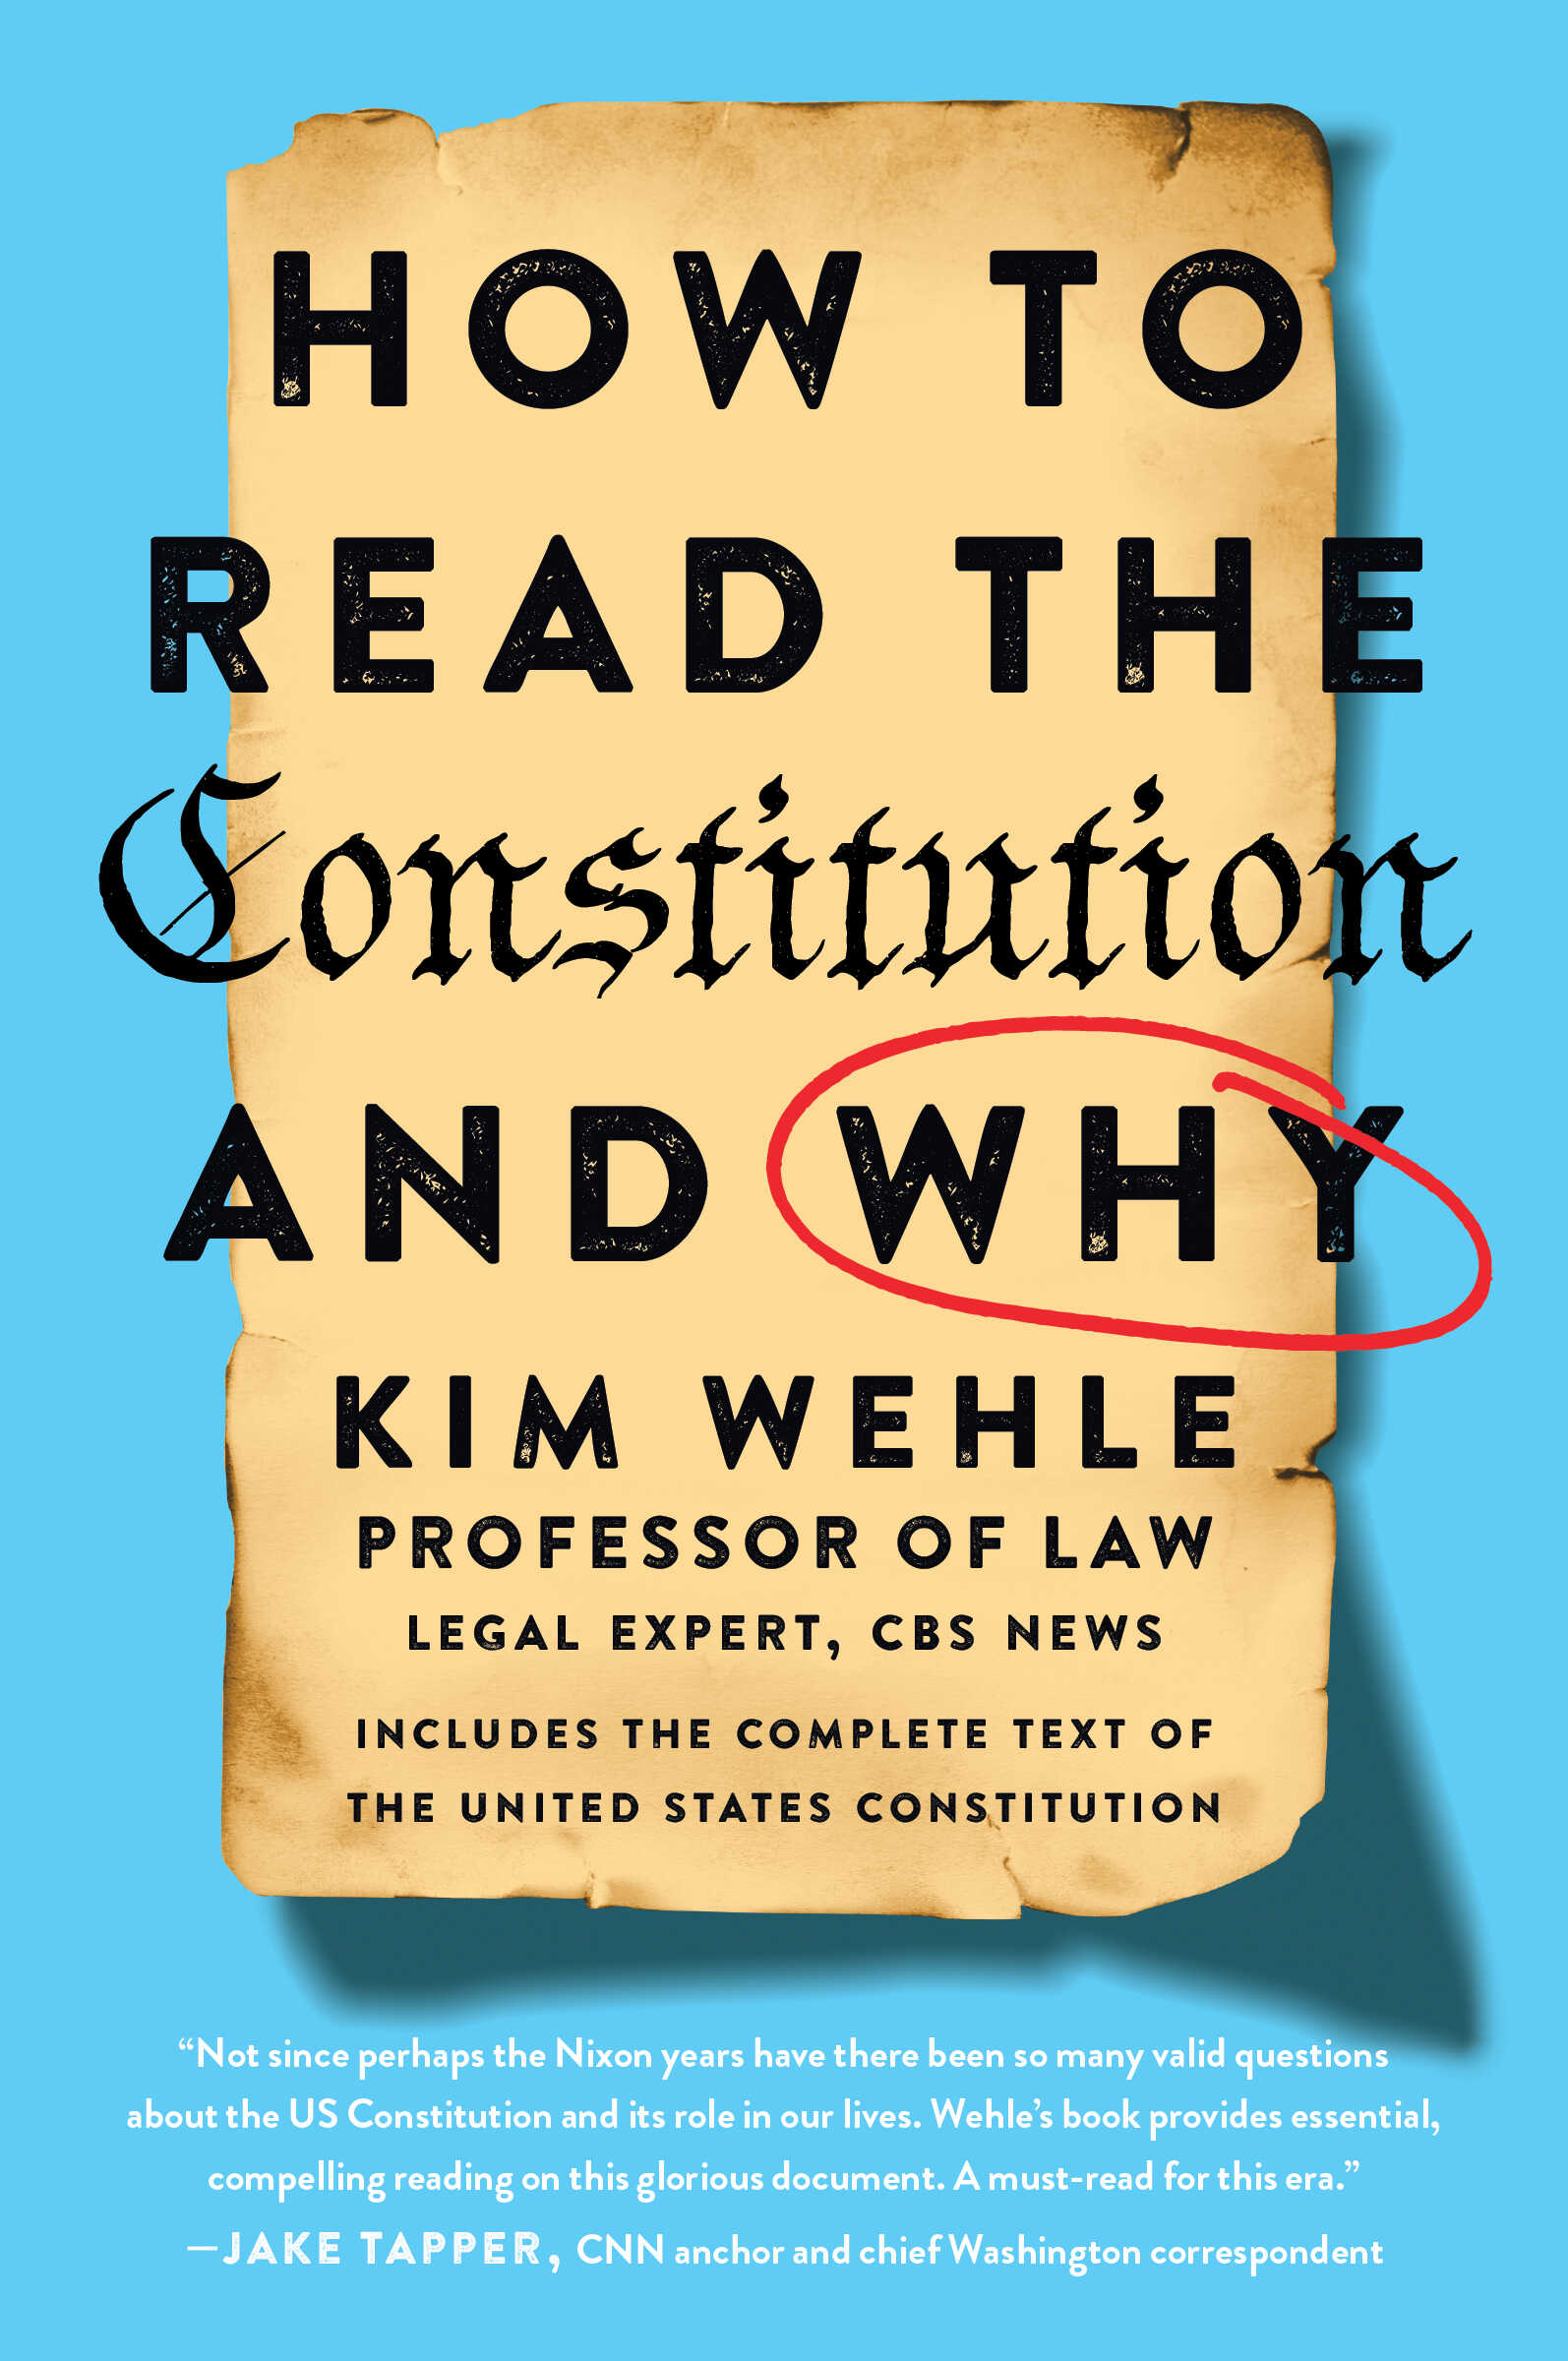 Primer on the U.S. Constitution by law professor Kimberly Wehle